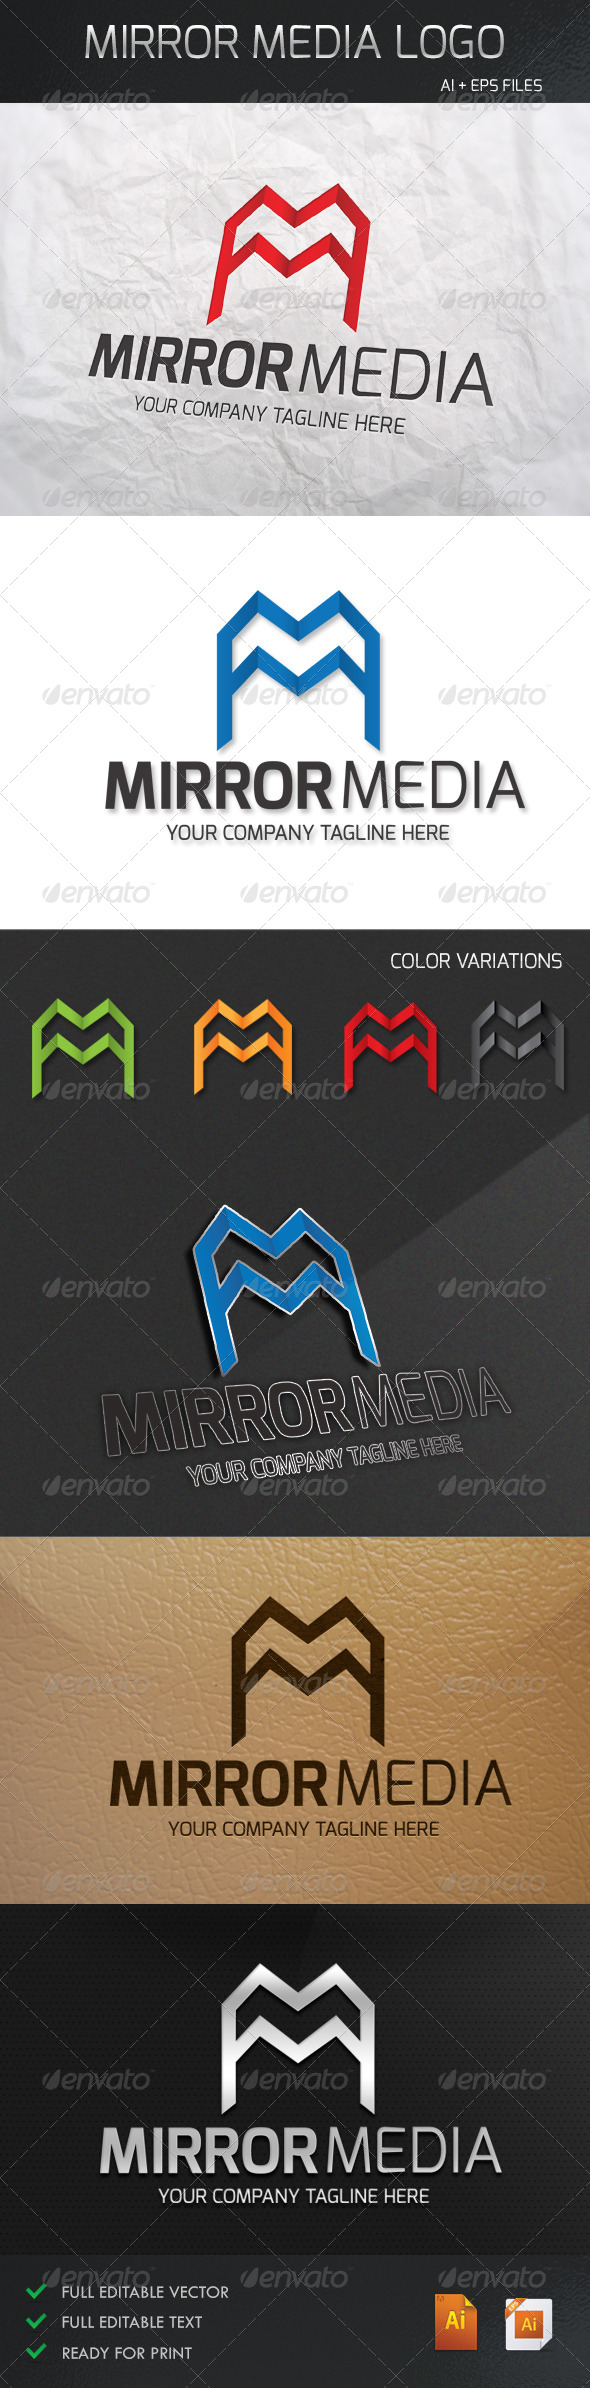 GraphicRiver Mirror Media Logo 5304767